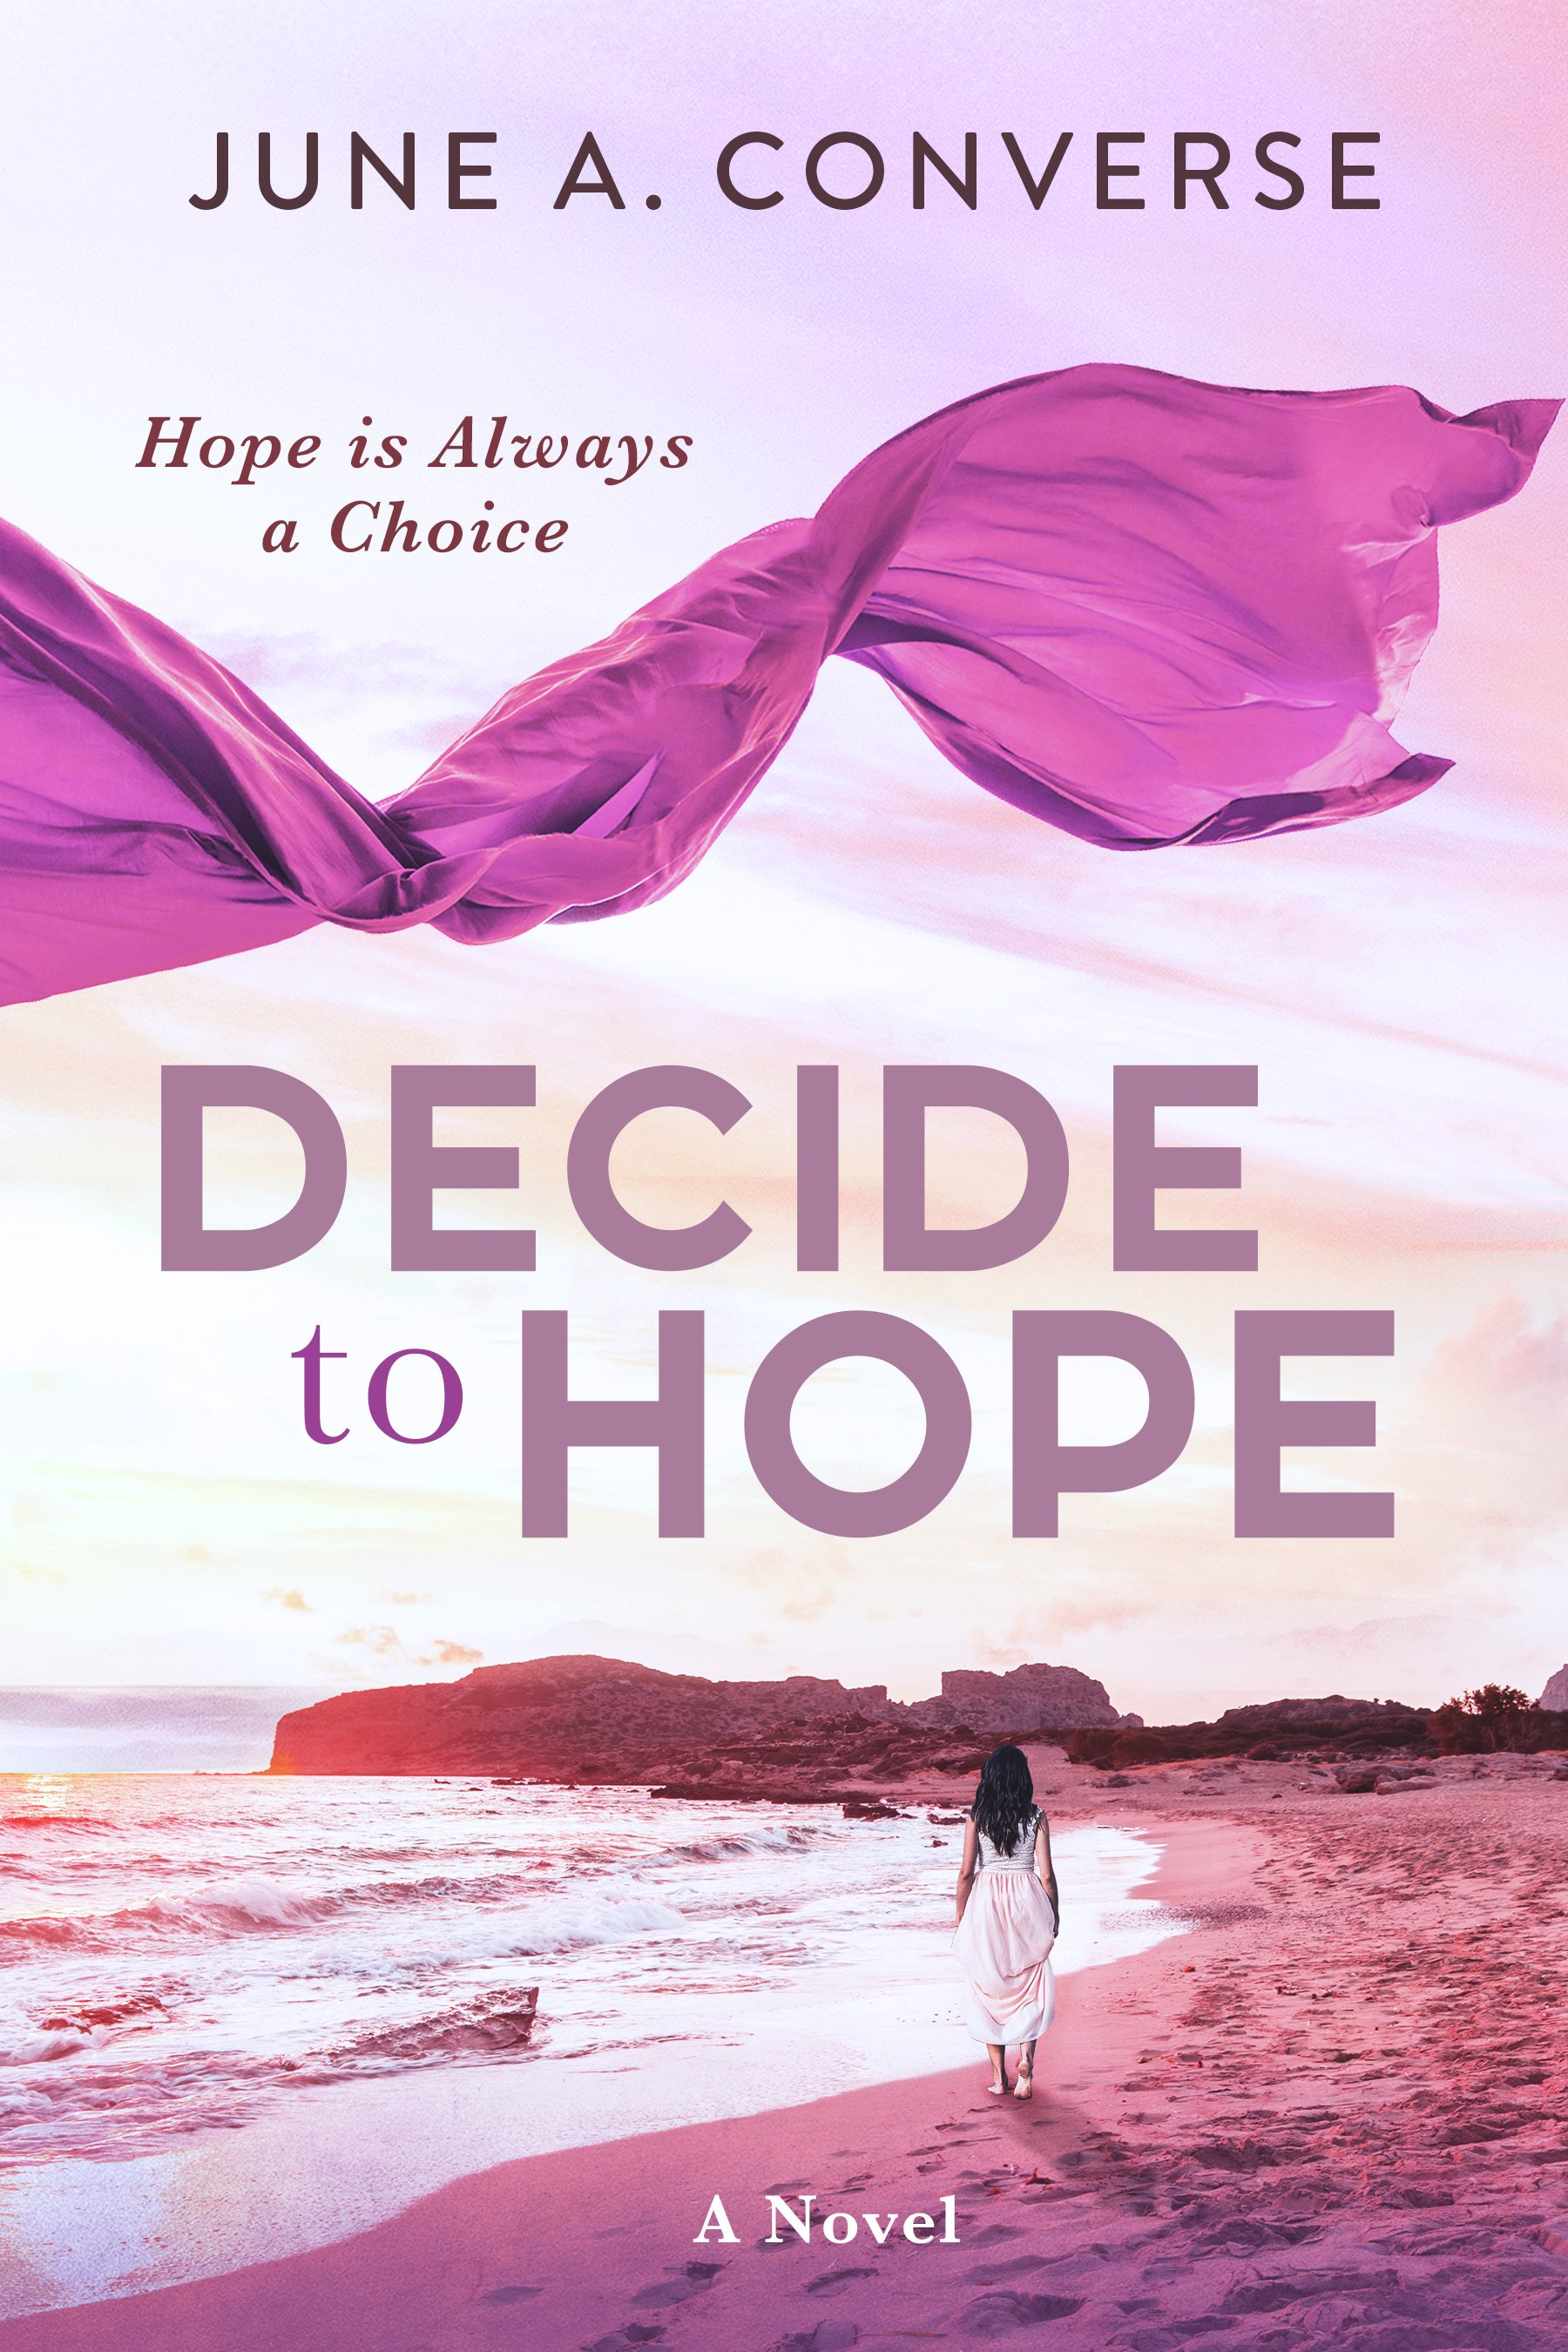 Woman walking along the beach at sunset - Decide to Hope cover by June A. Converse